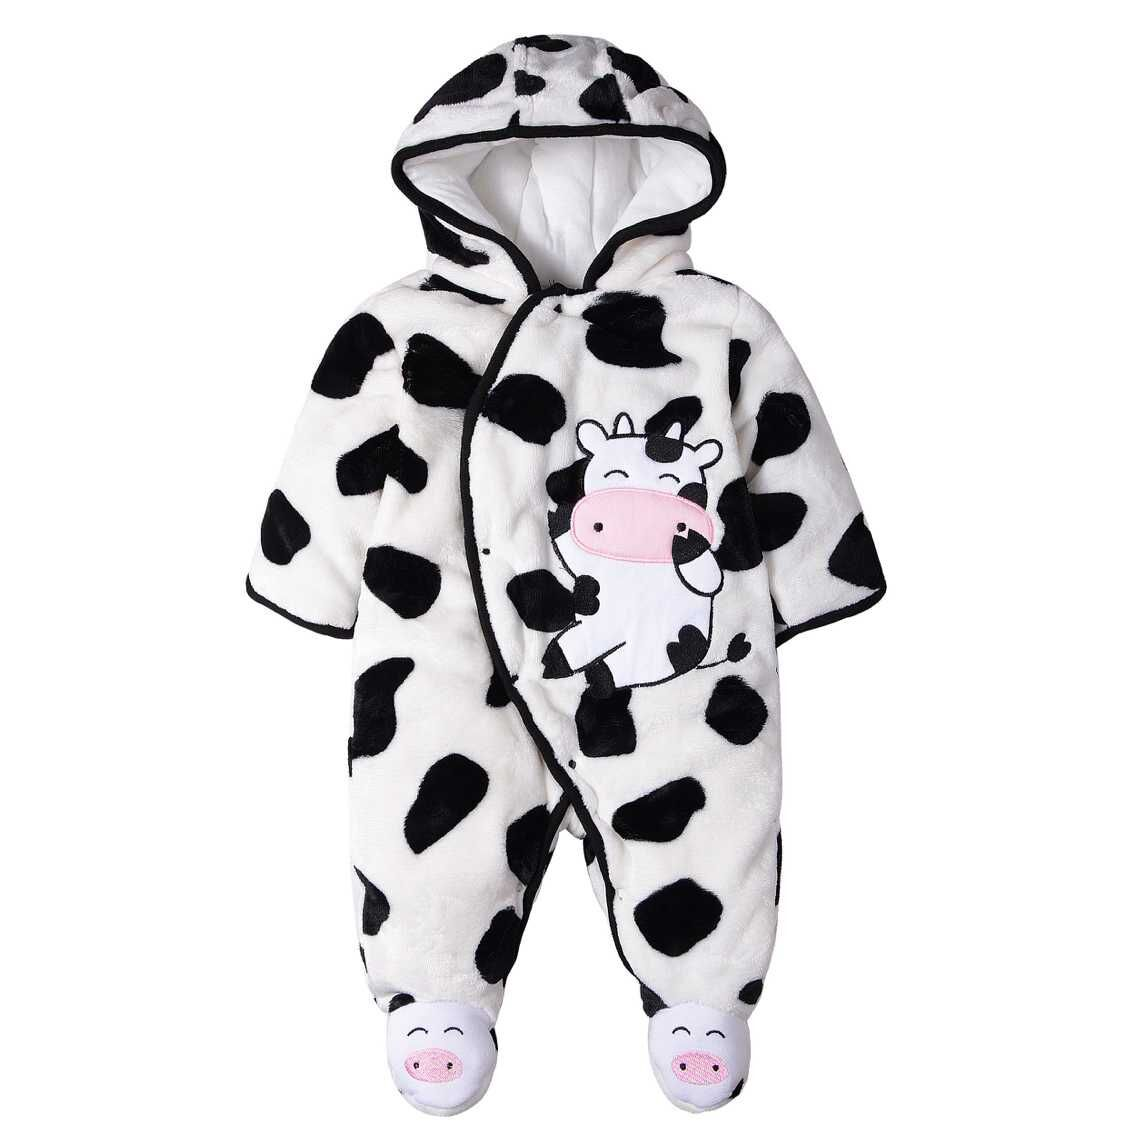 Newborn Animal Milk Cow Romper Baby Boy Warm Infant Romper Kid Girls Jumpsuit Hooded Infant Clothes Outfit Winter Baby Clothing